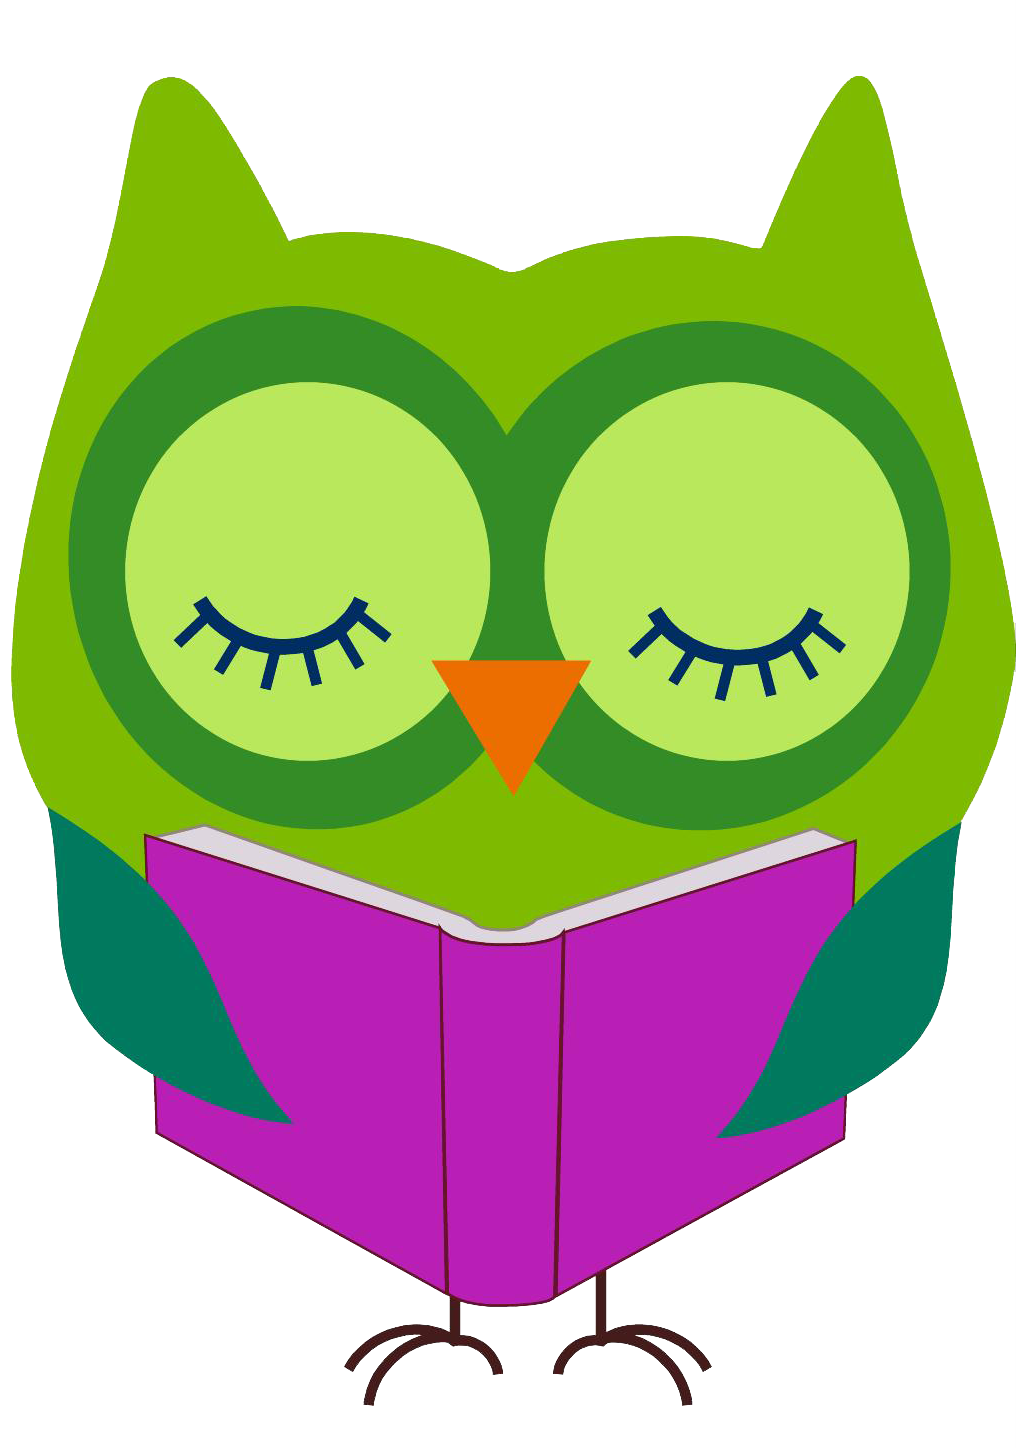 Google search library owl. Reading clipart royalty free